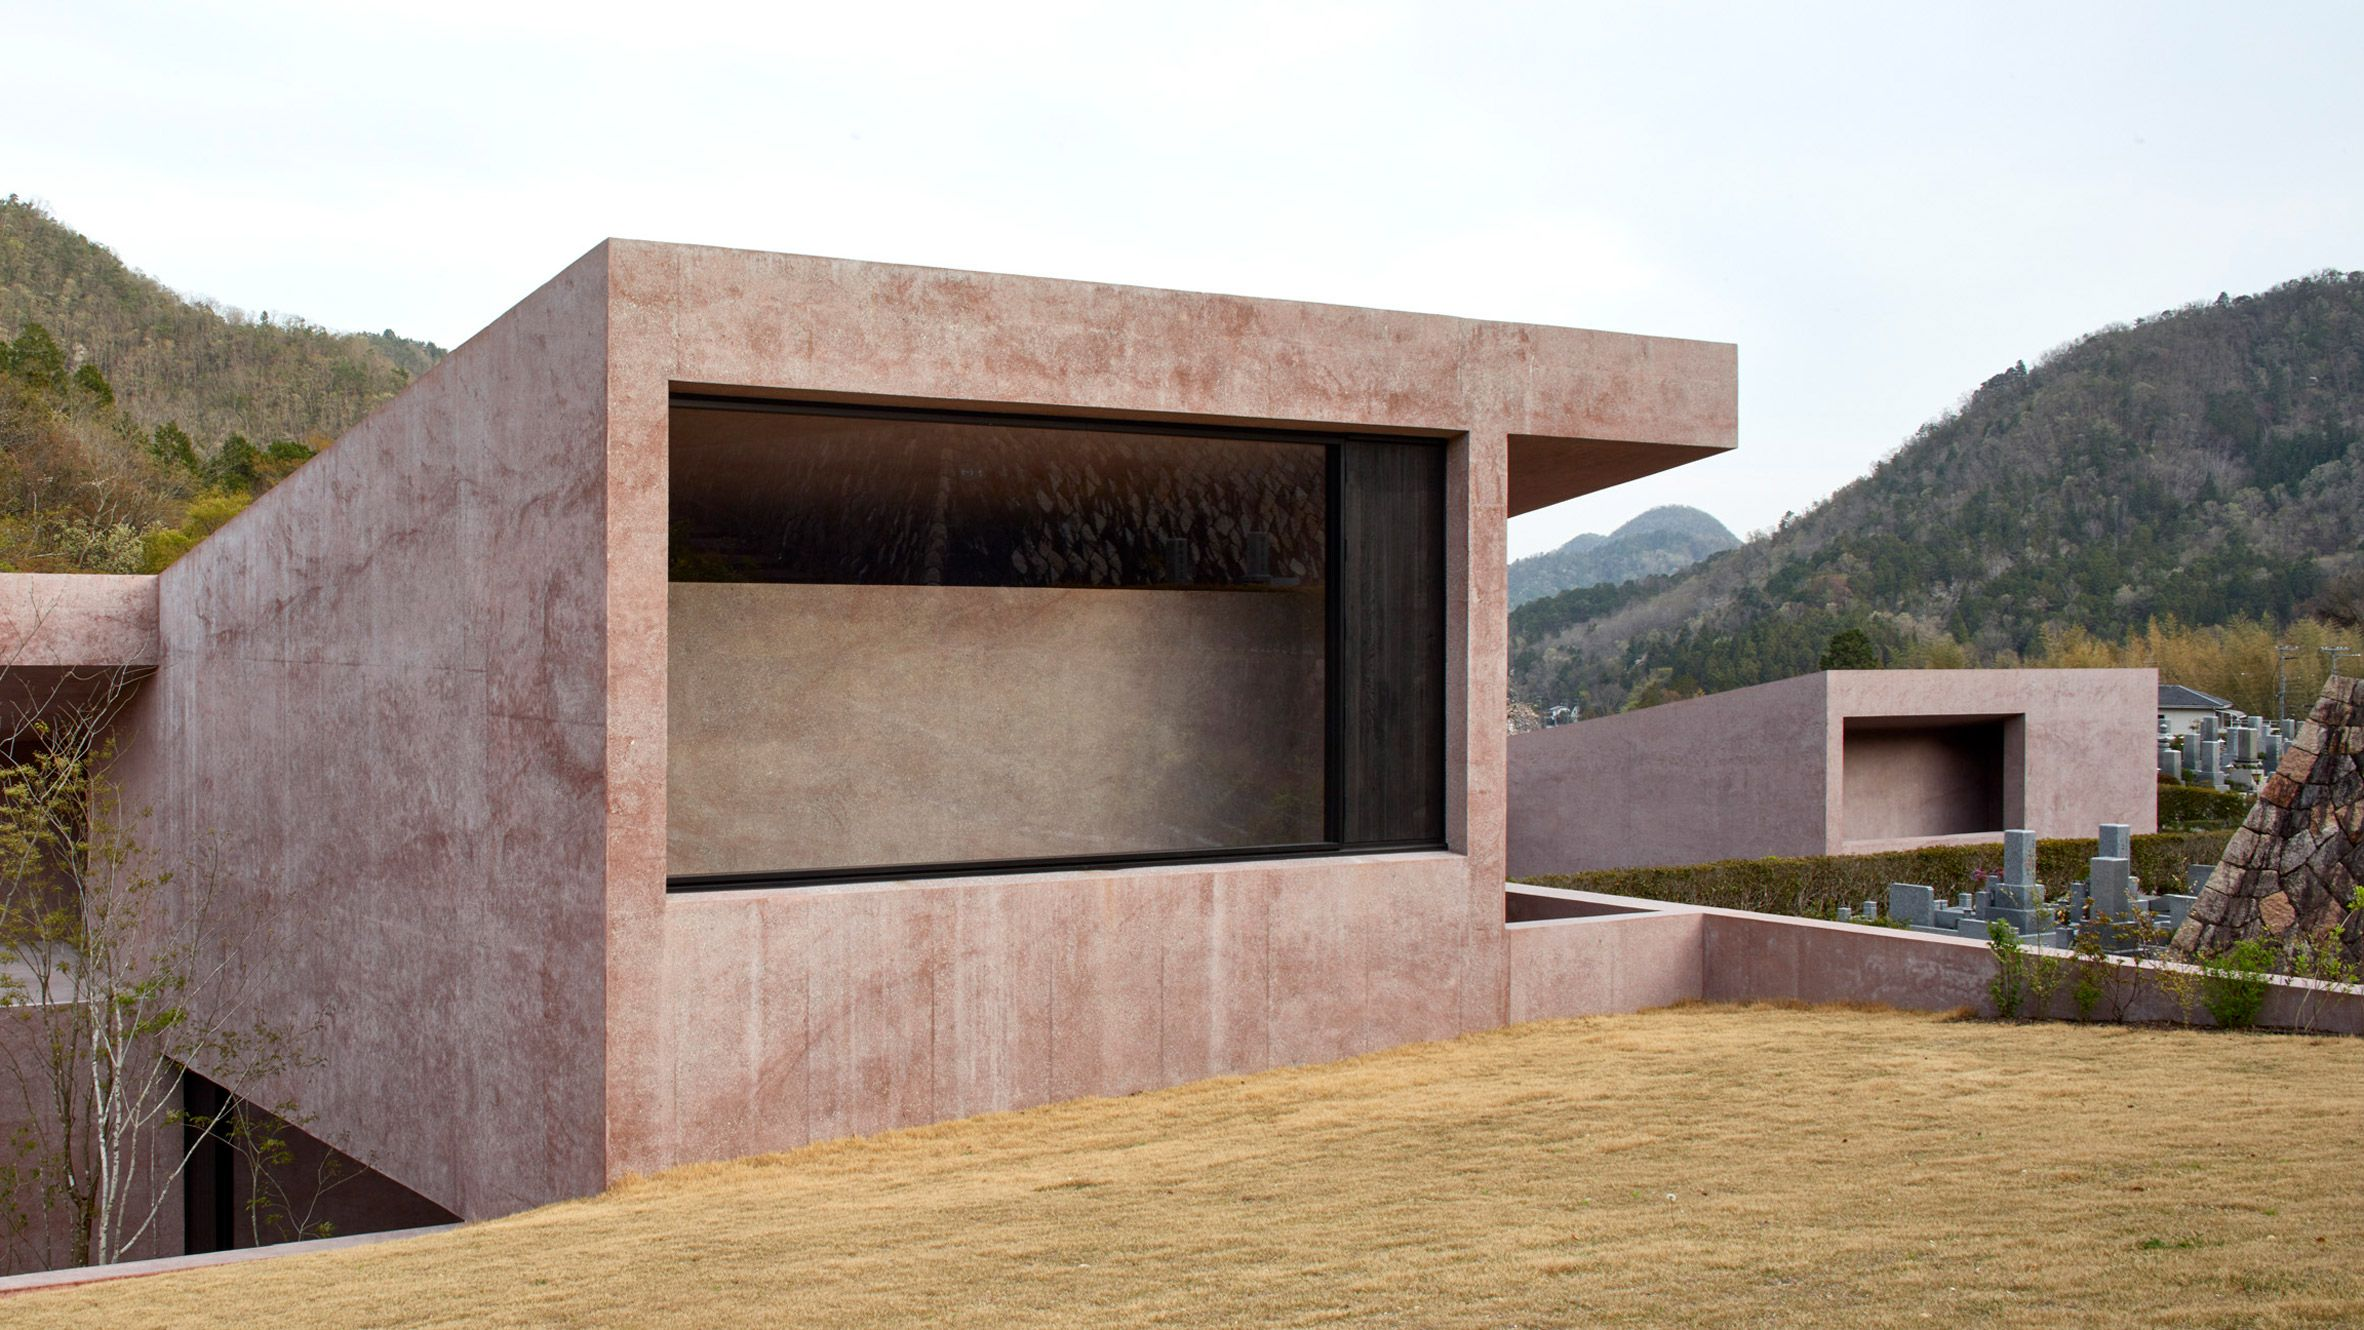 A Pink Pigmented Concrete Building Designed By David Chipperfield S Studio For A Cemete David Chipperfield Architects Concrete Architecture Facade Architecture